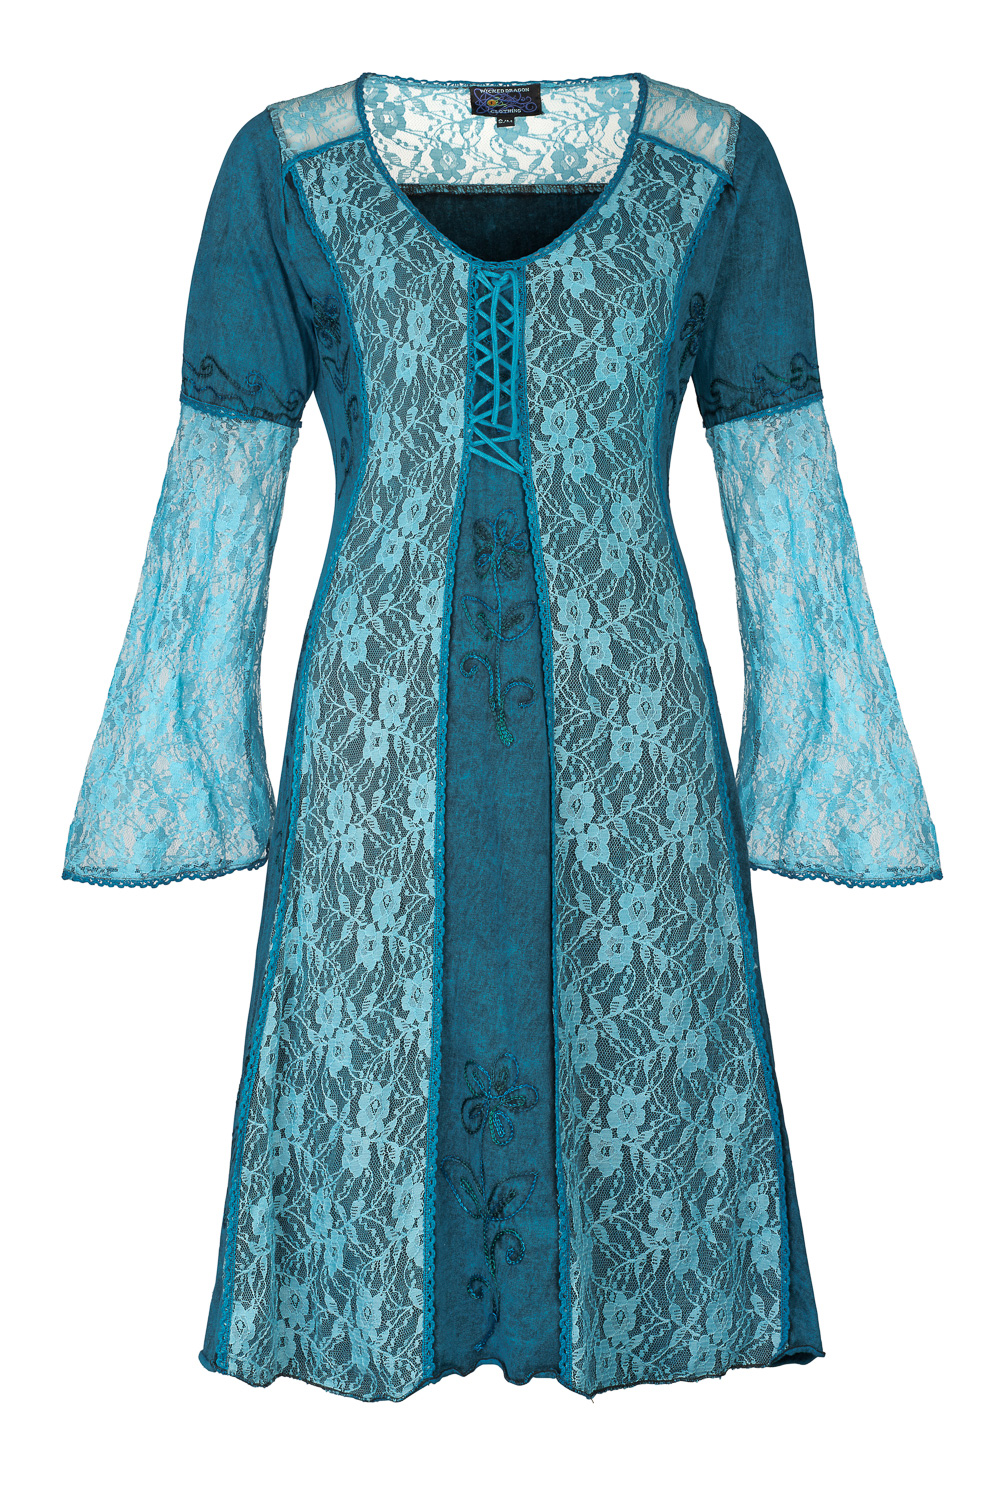 Lace and cotton dress with bell sleeves